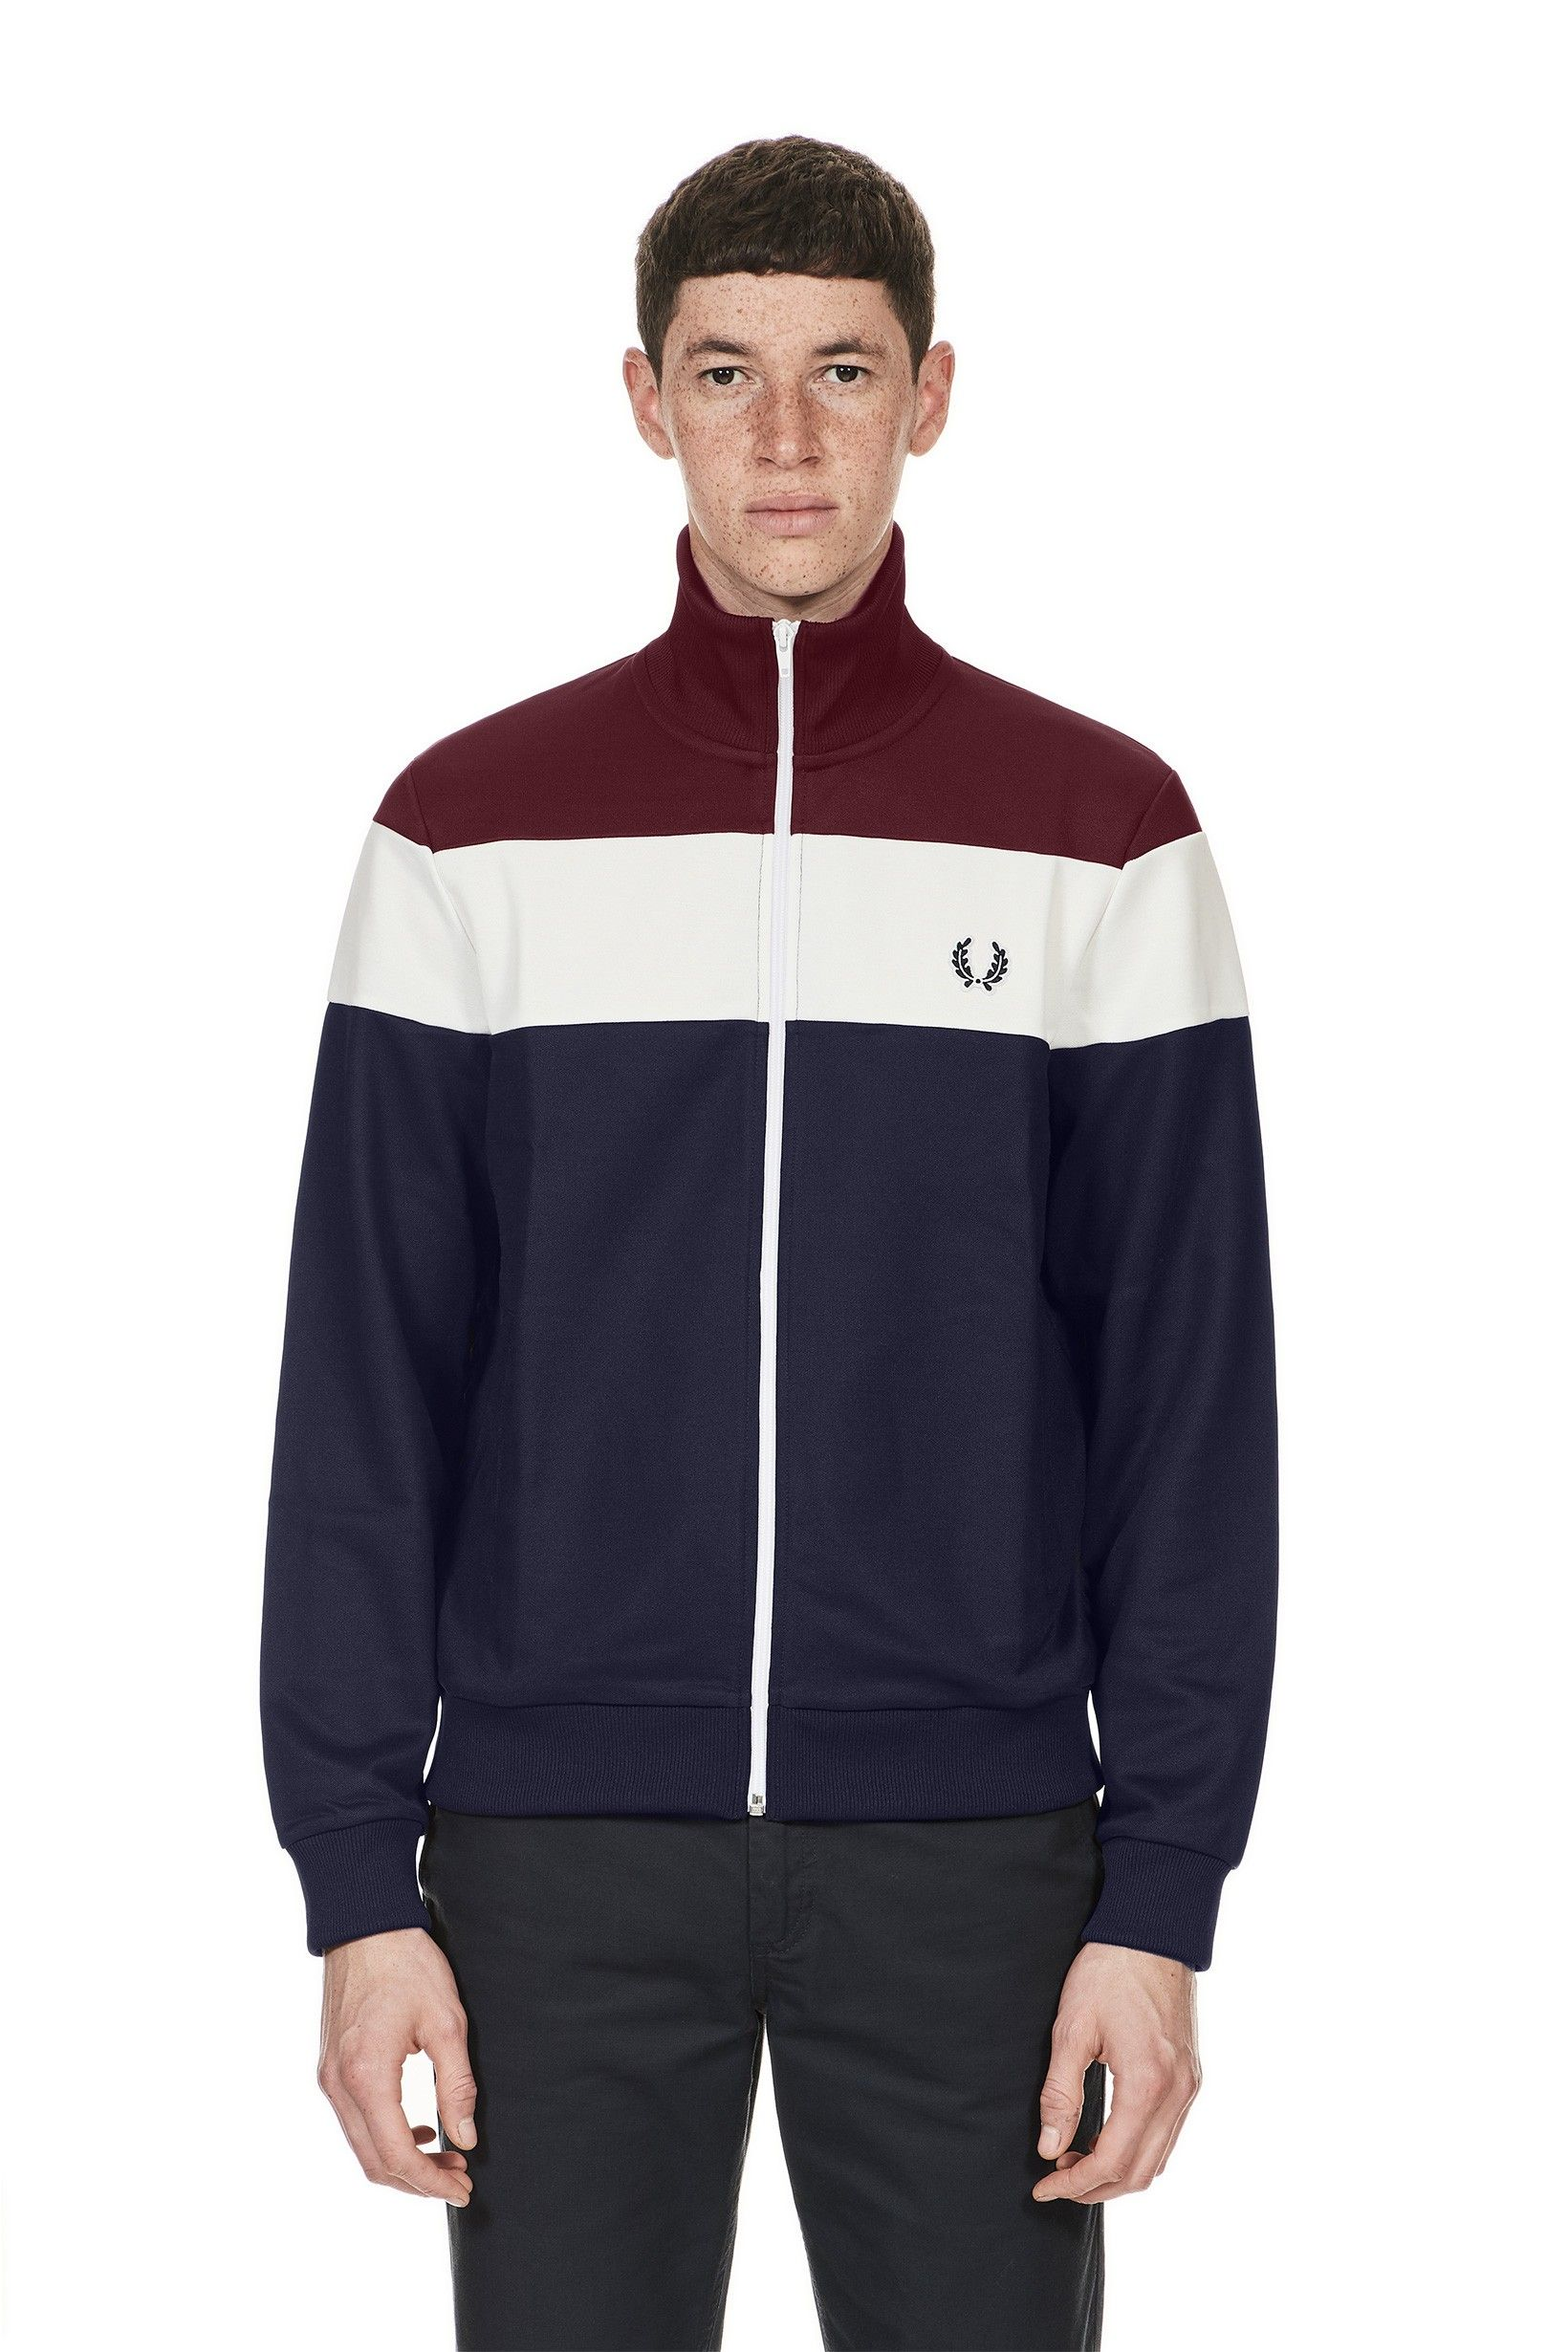 54d76345e049 Fred Perry - Sports Authentic Colour Block Track Jacket Carbon Blue ...